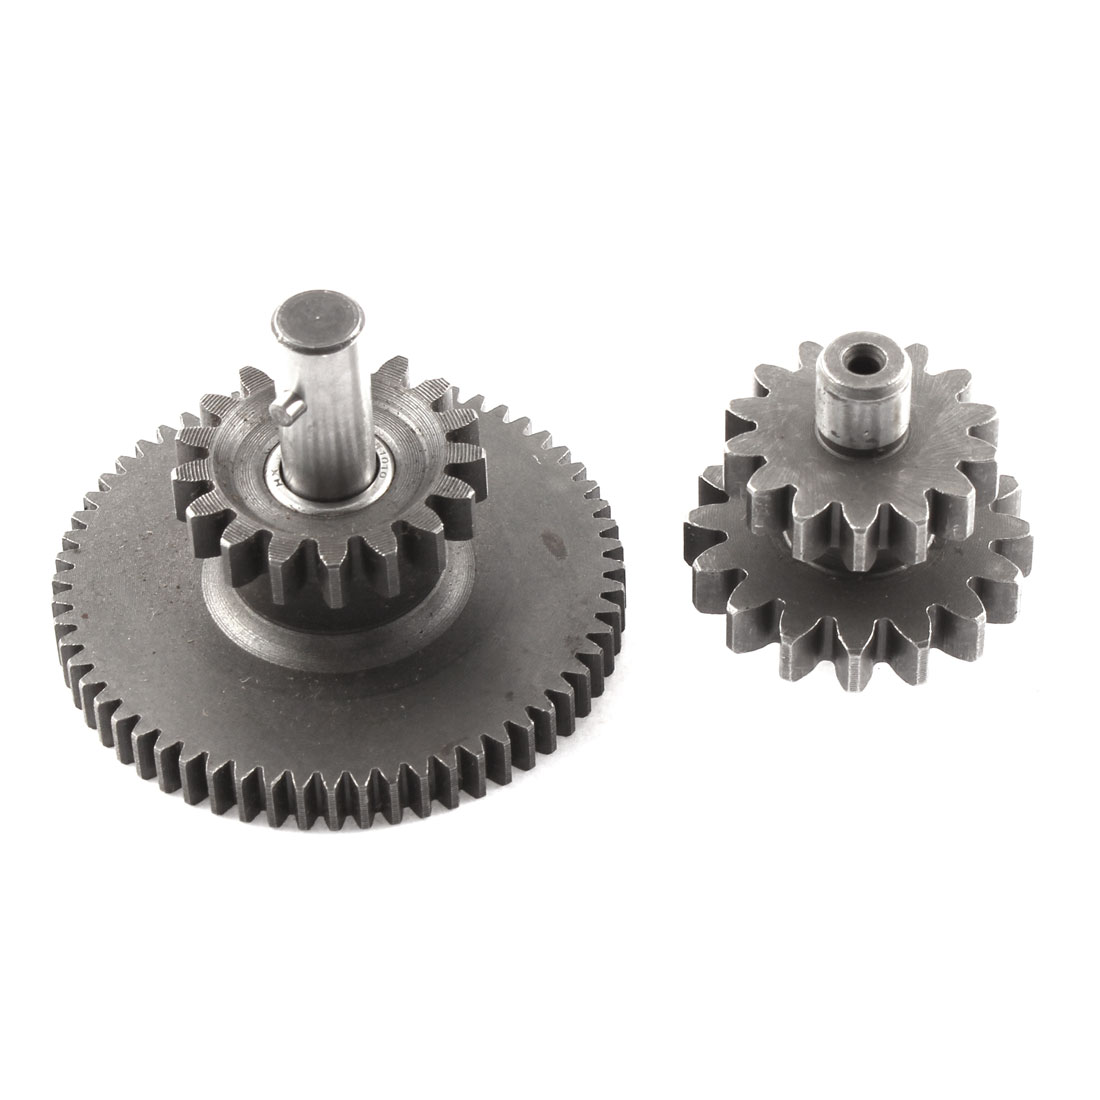 Unique Bargains Motorcycle Transmission Gears Shafts Shift for CG200